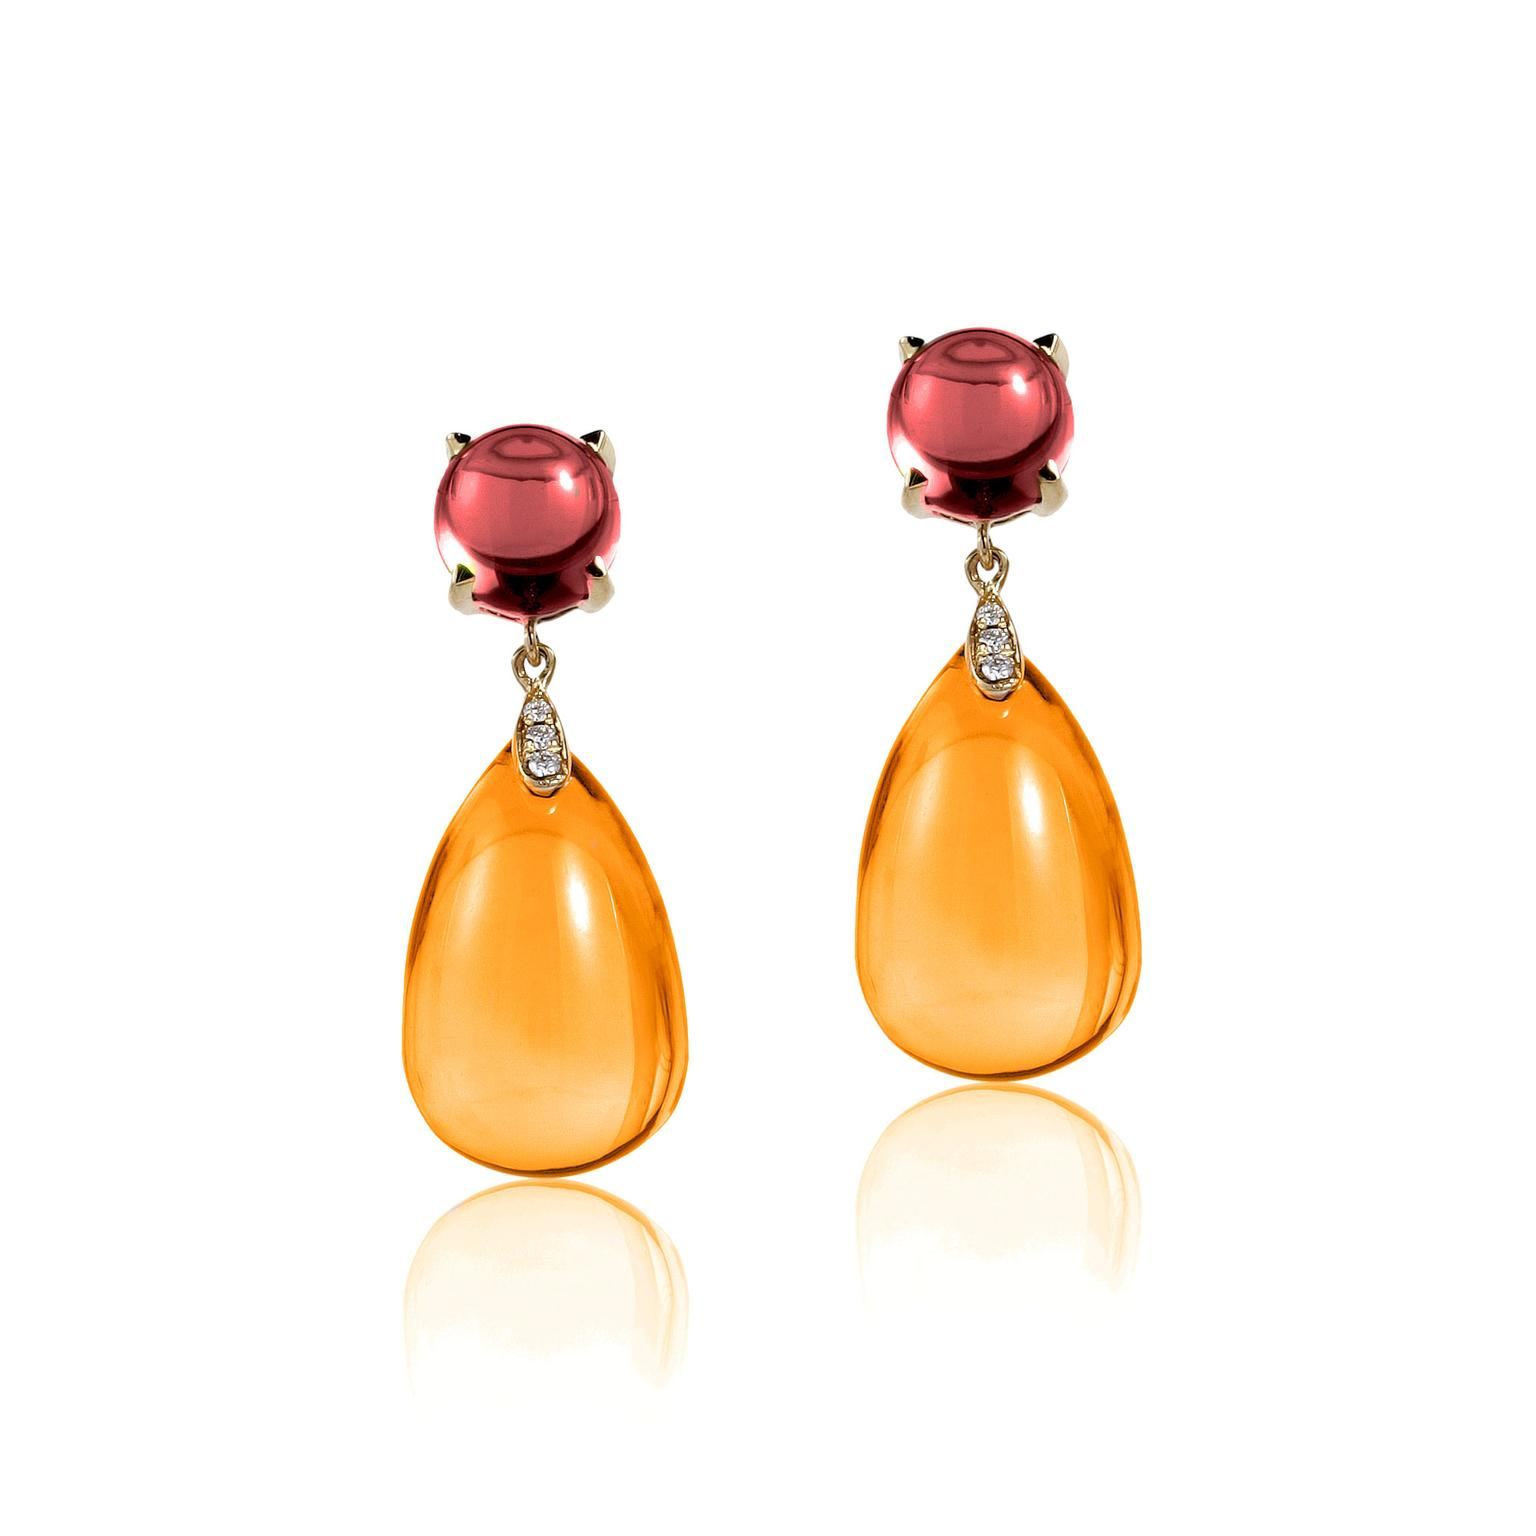 Goshwara citrine and garnet earrings